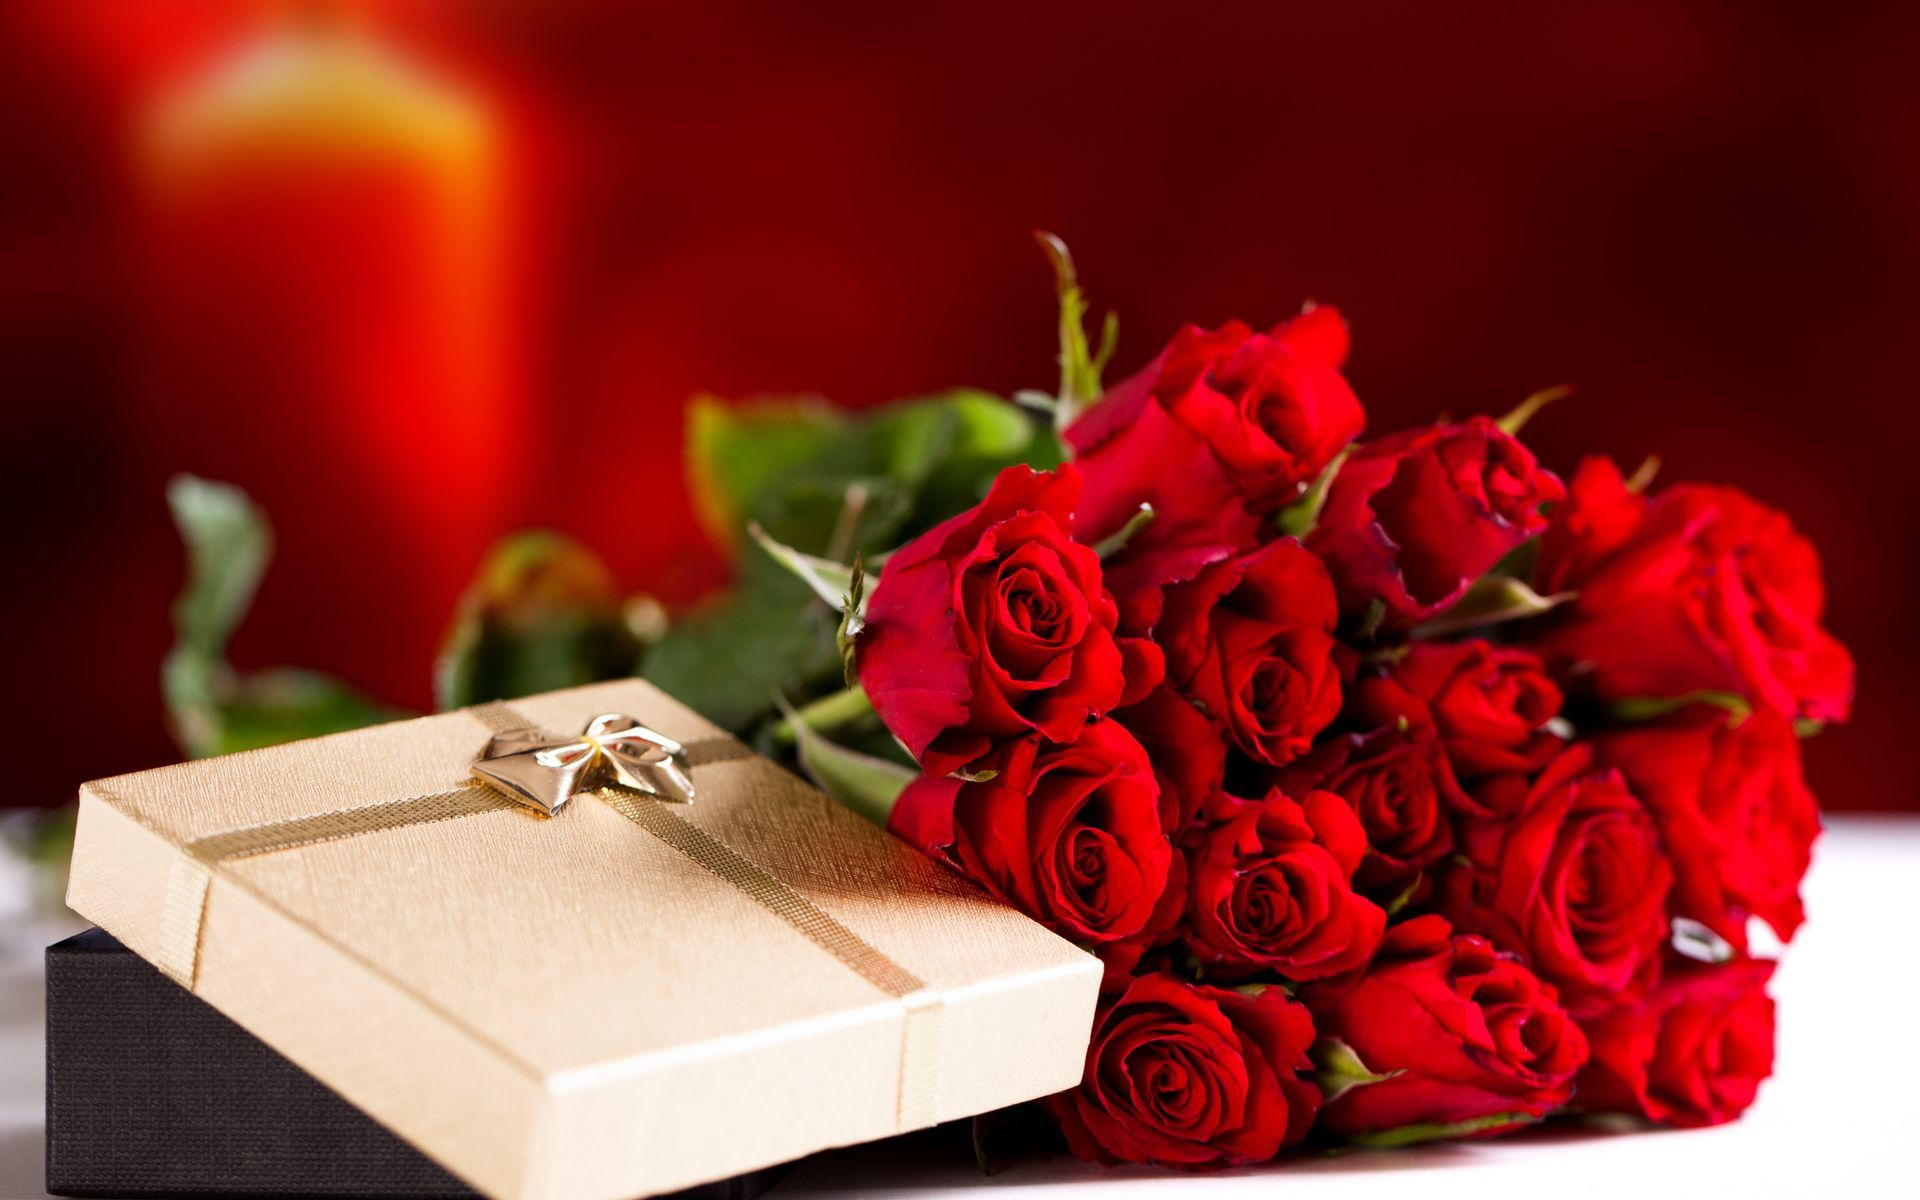 Best Valentine's Day Gifts for your Loved Ones